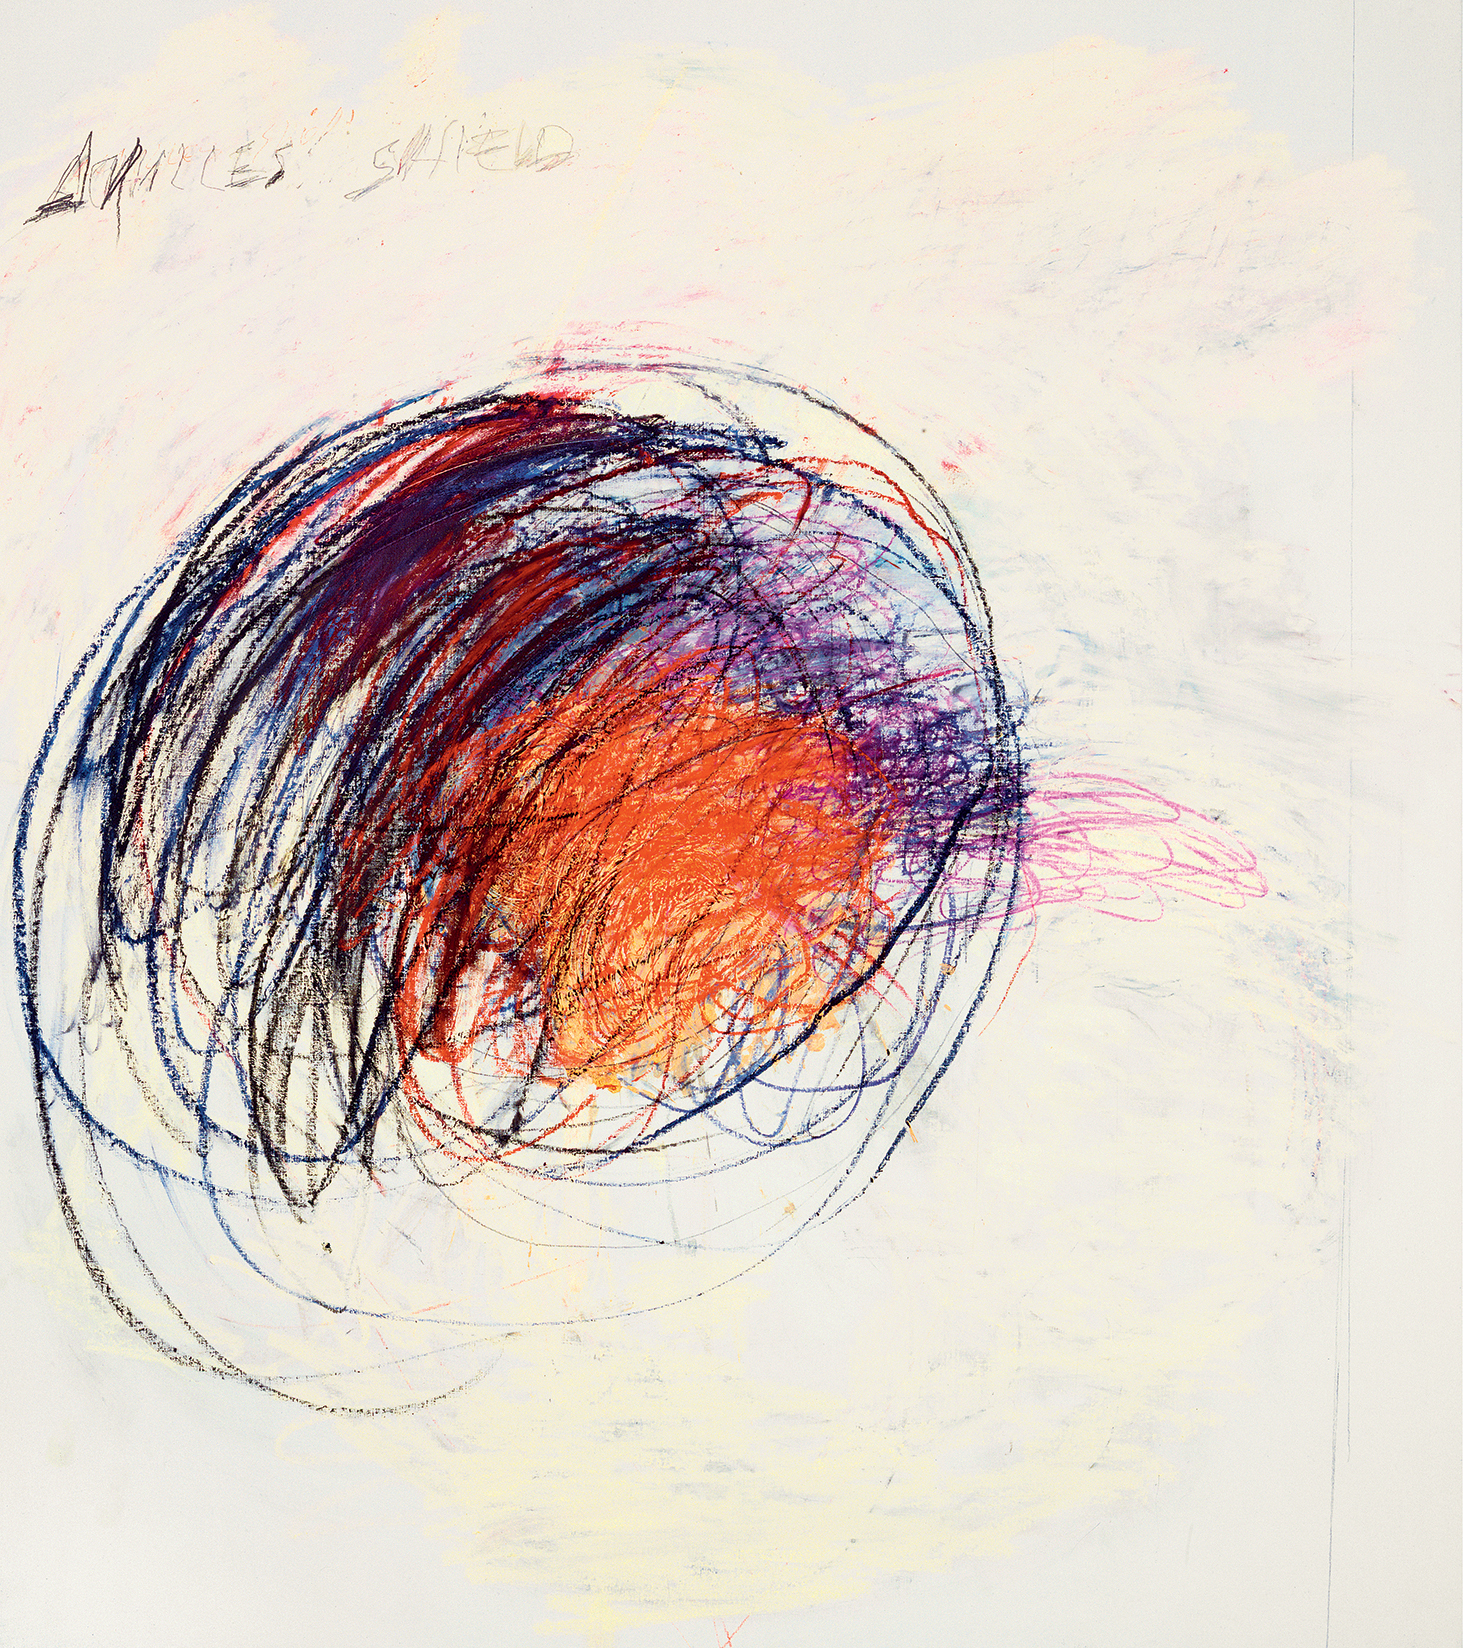 Fifty Days at Iliam Shield of Achilles, Part I (1978), by Cy Twombly. Oil, oil crayon and pencil, 191.8 x 170.2 cm. Philadelphia Museum of Art. © Courtesy of Philadelphia Museum of Art, Philadelphia.